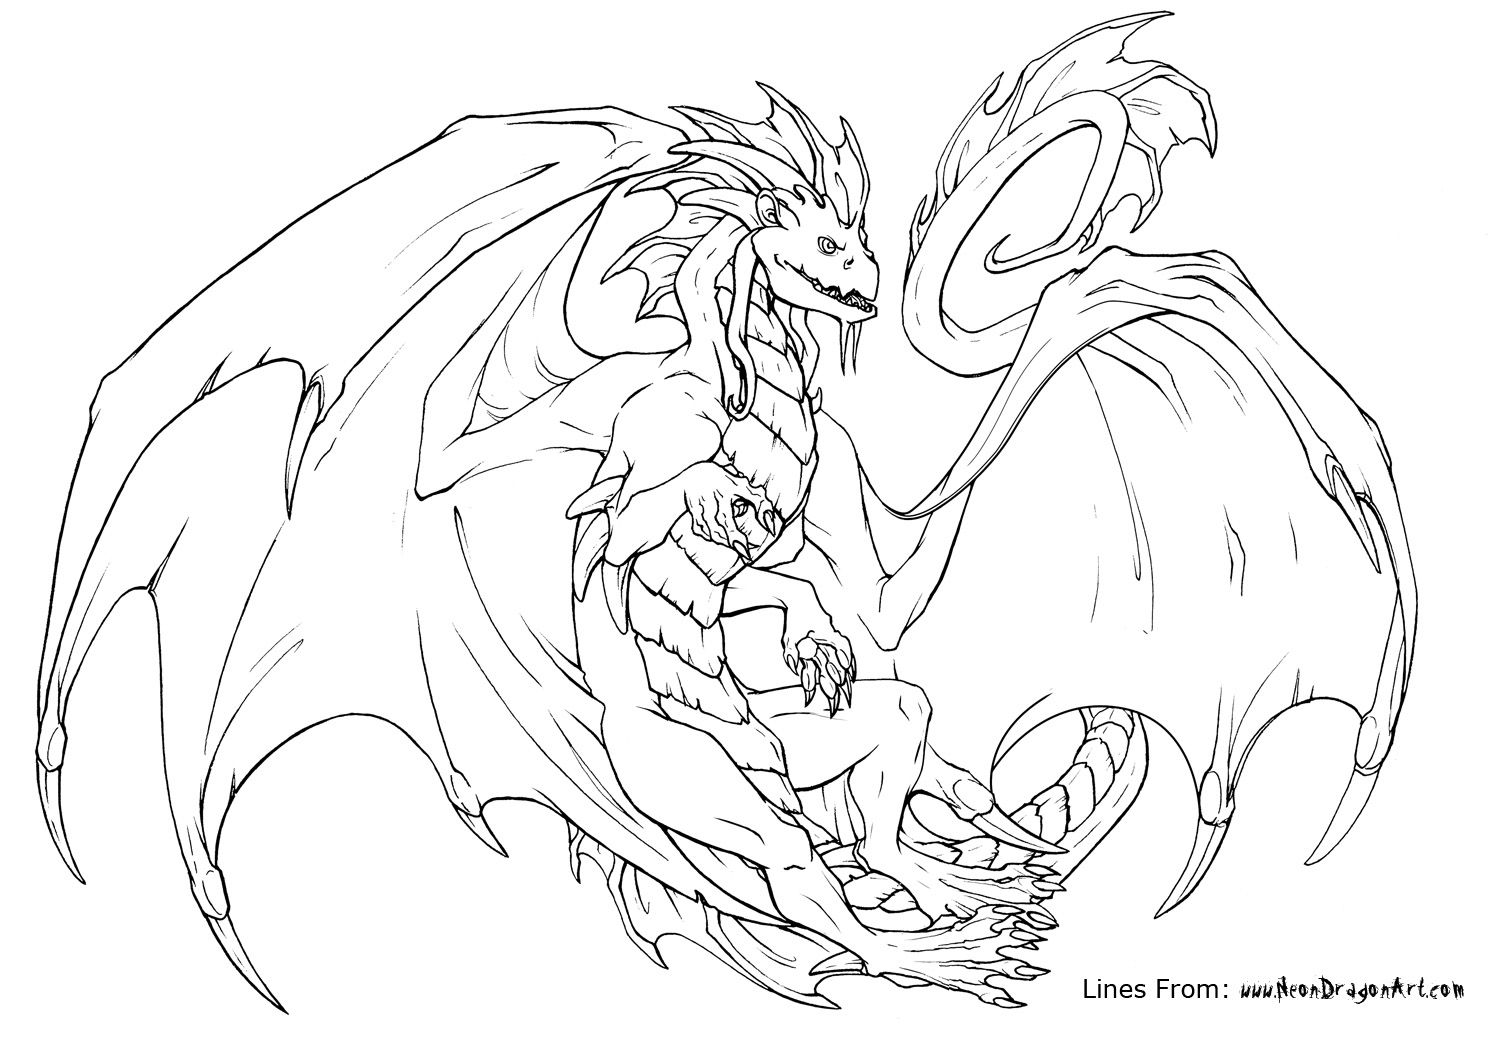 1500x1037 Dragon Breathing Fire Coloring Pages, Cool Dragon Coloring Pages